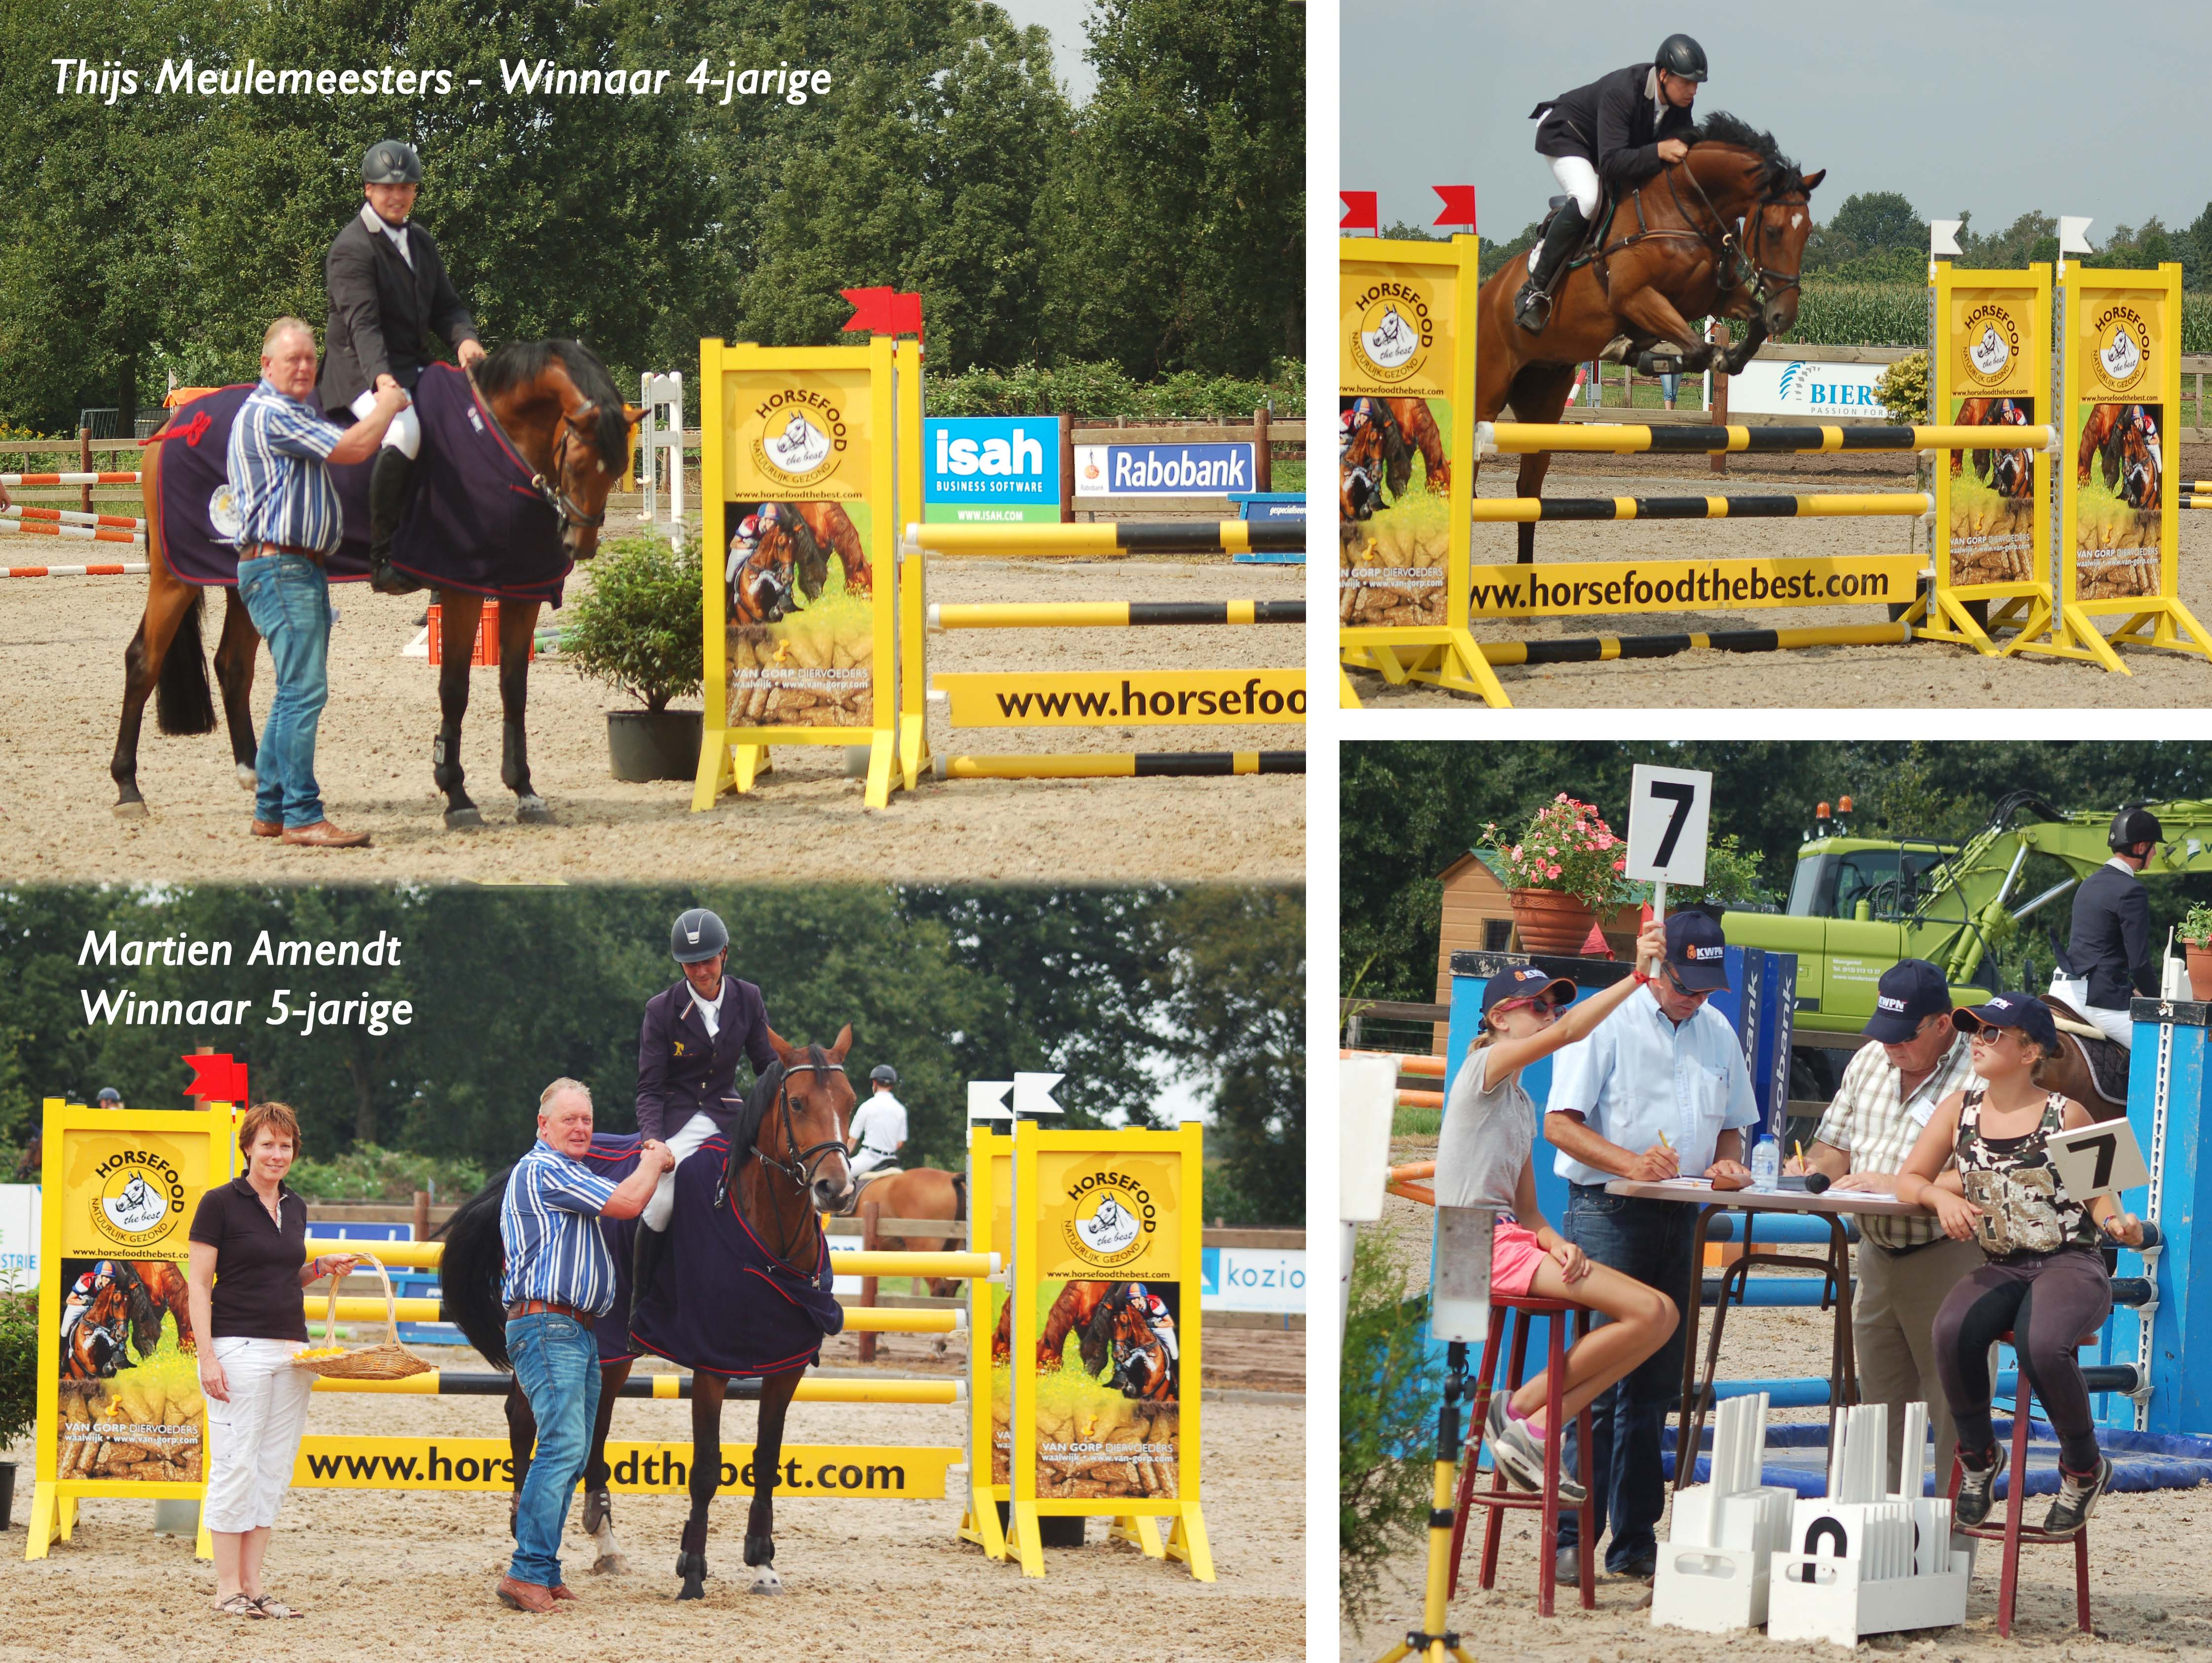 Winnaars Horsefood Spring Talent 2014